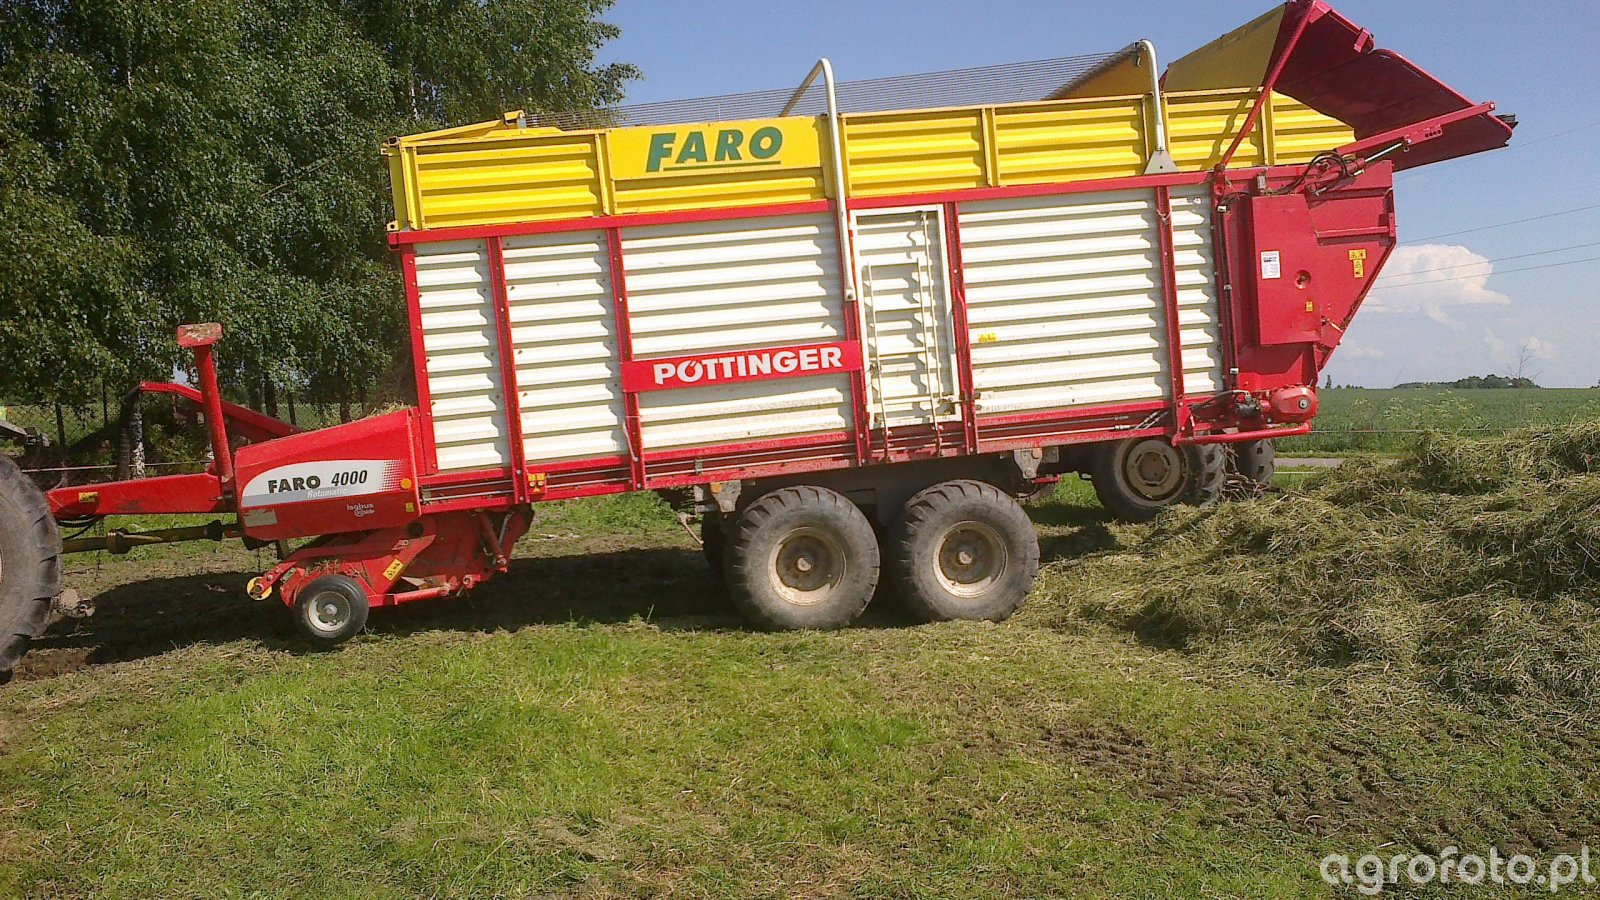 Pottinger Faro 4000